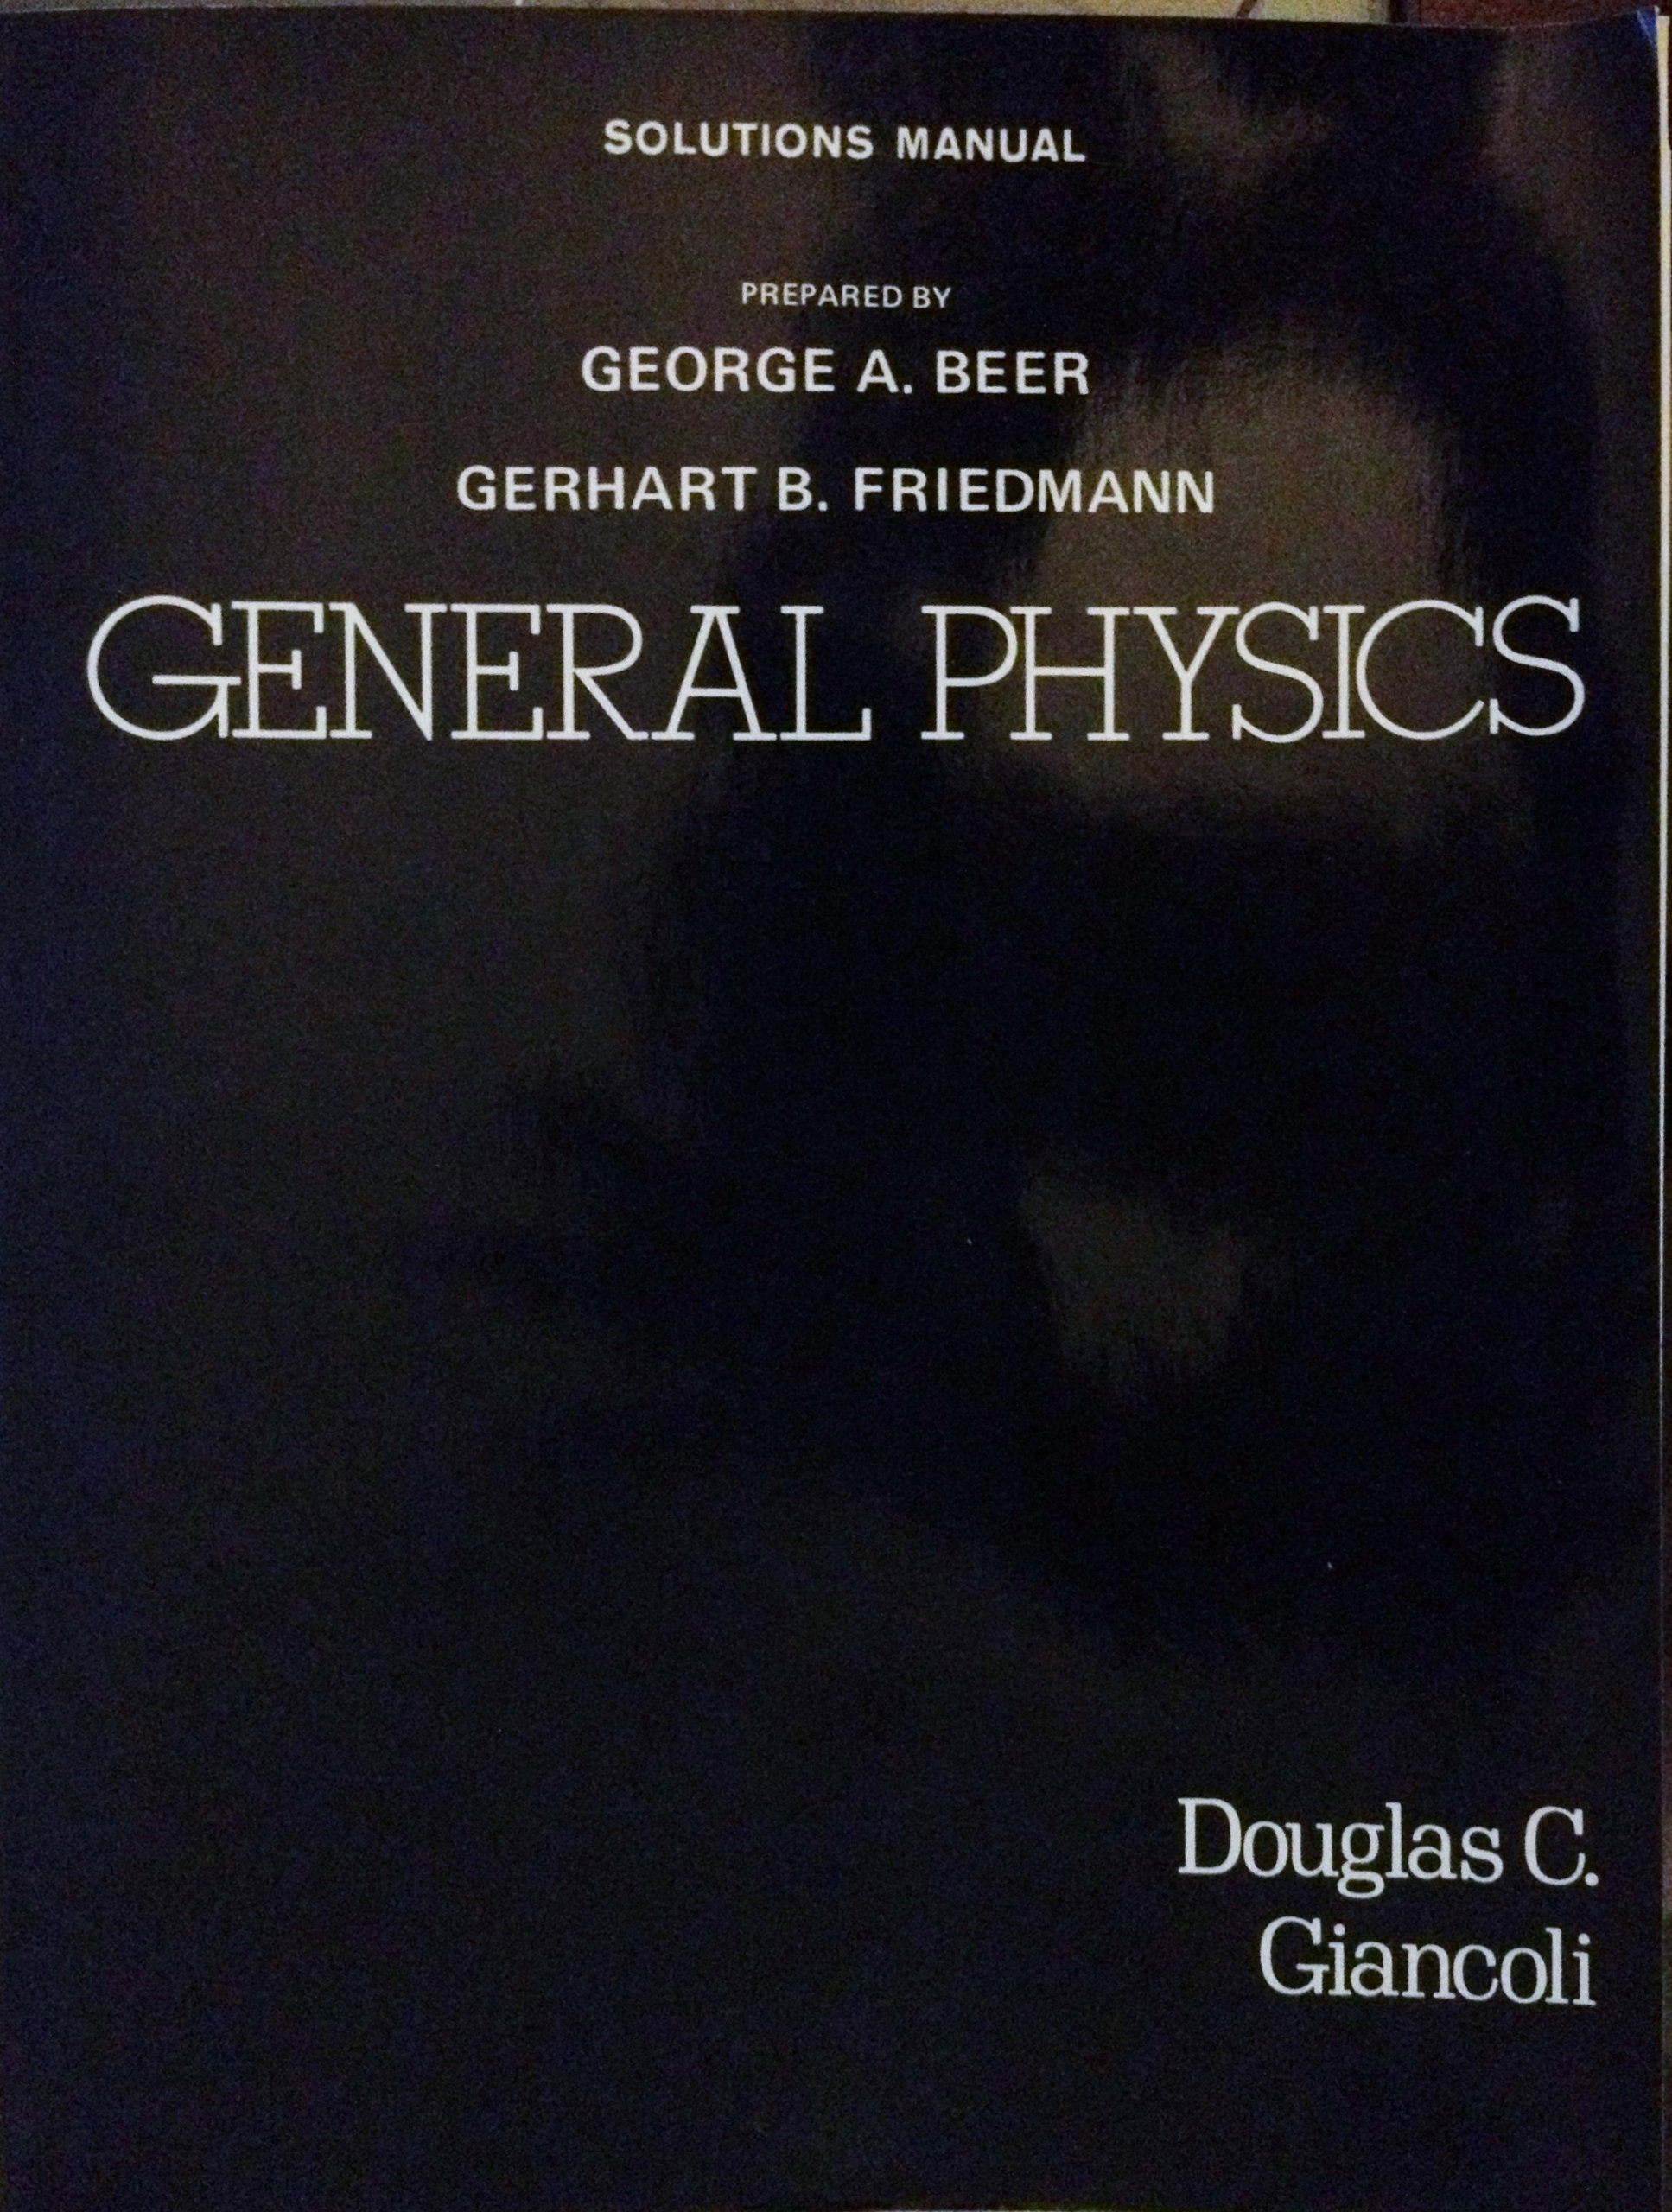 General physics, Douglas C. Giancoli: Solutions manual: George A Beer:  9780133509014: Amazon.com: Books